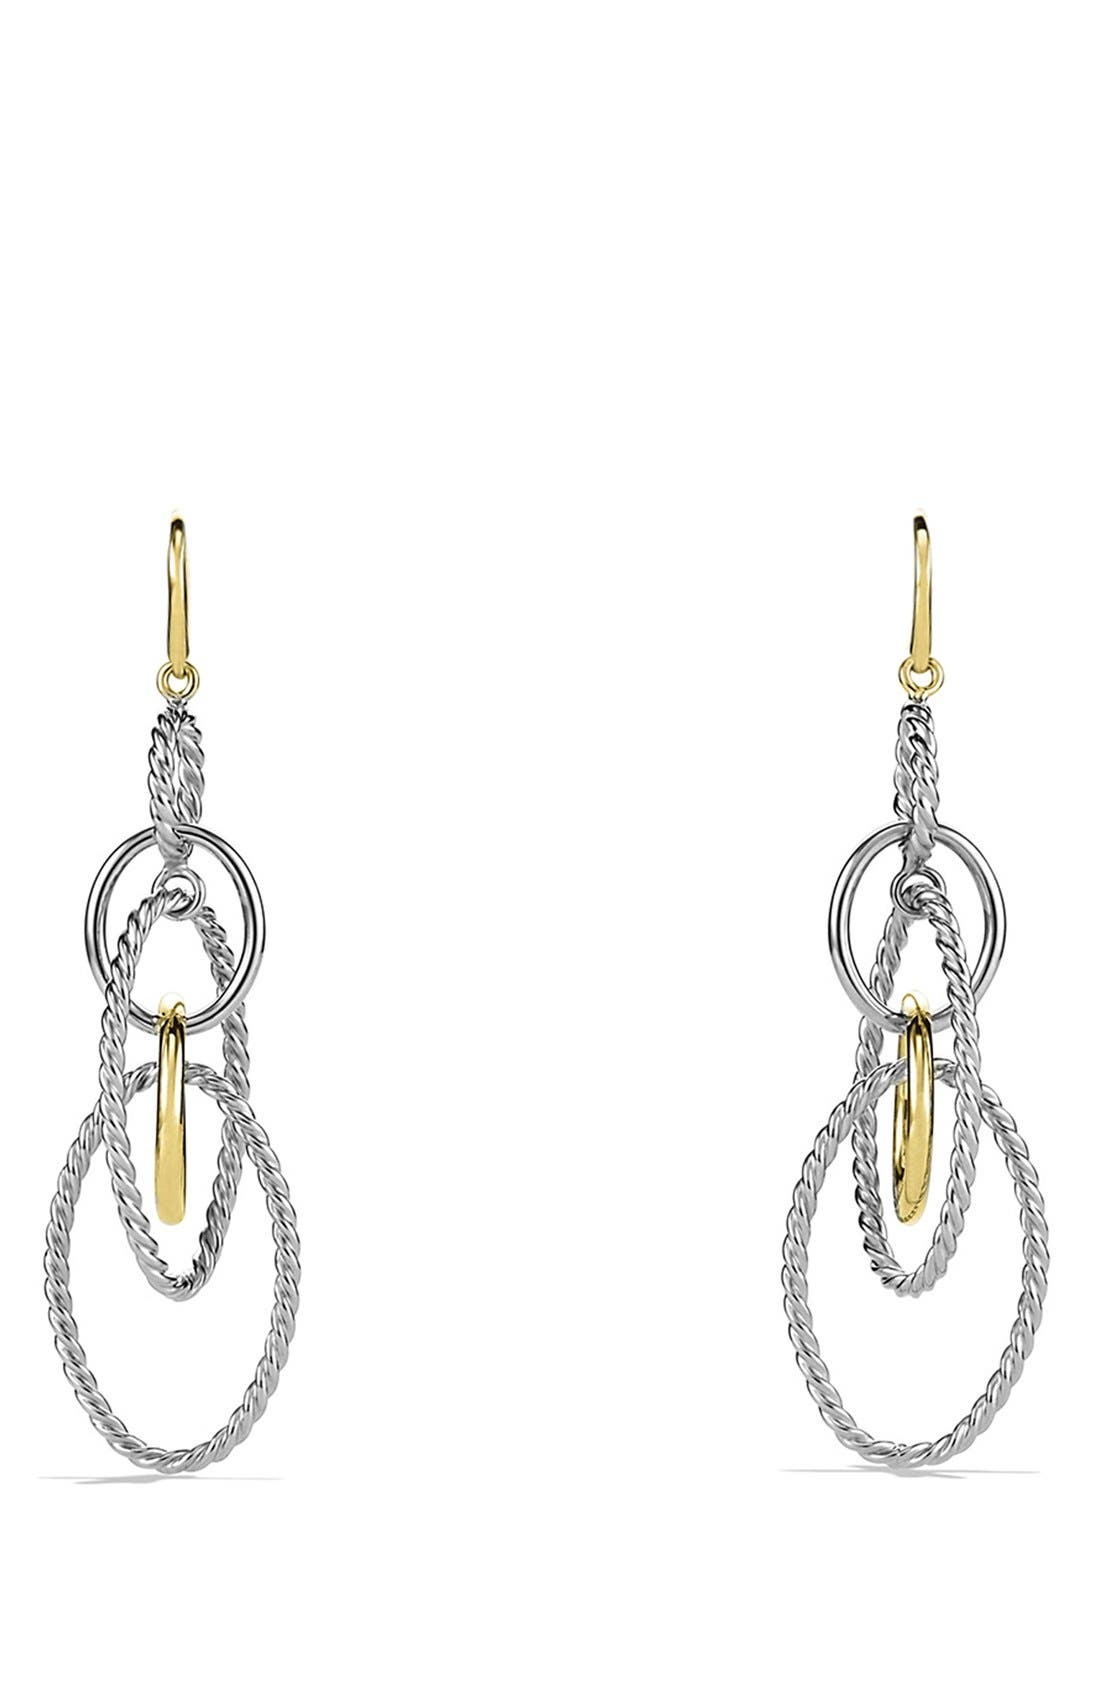 David Yurman 'Mobile' Large Link Earrings with Gold